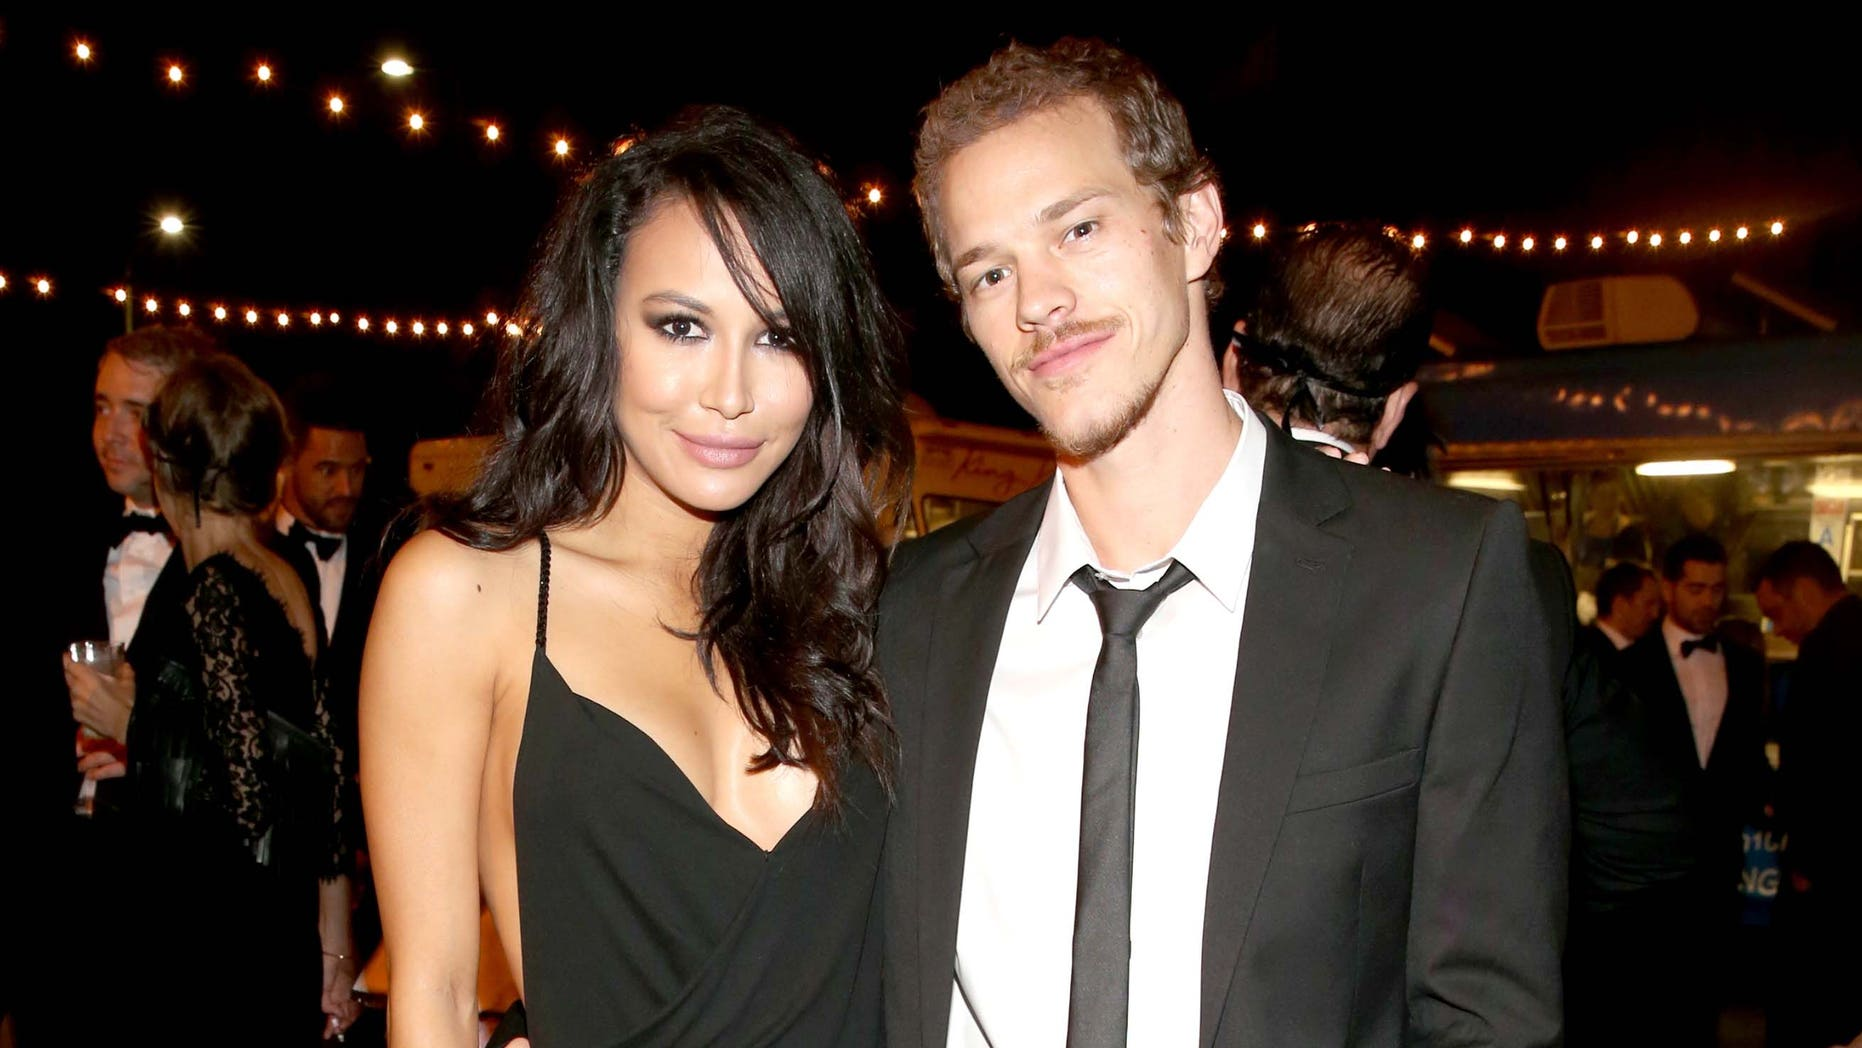 Actors Naya Rivera (L) and Ryan Dorsey at The UNICEF Dia de los Muertos Black & White Masquerade Ball at Hollywood Forever Cemetery benefiting UNICEF's education programs for Syrian children on October 30, 2014 in Los Angeles, California.